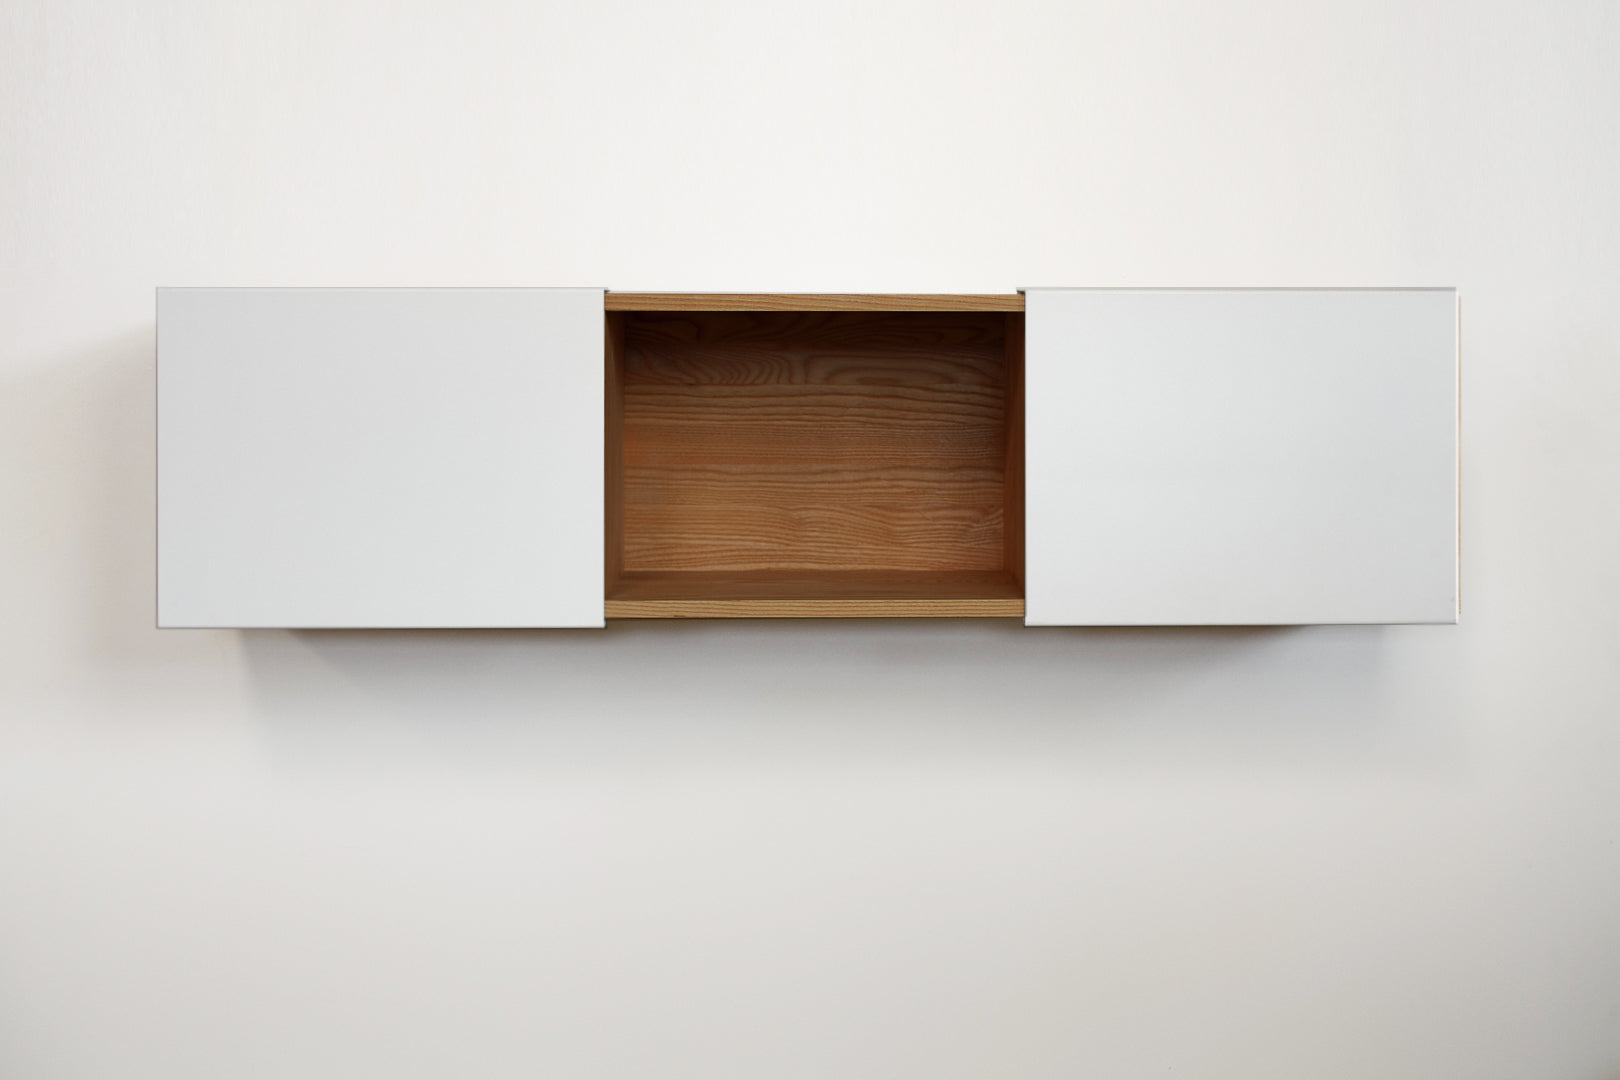 3X Wall Mounted Shelf - English Walnut, Gloss White Panel